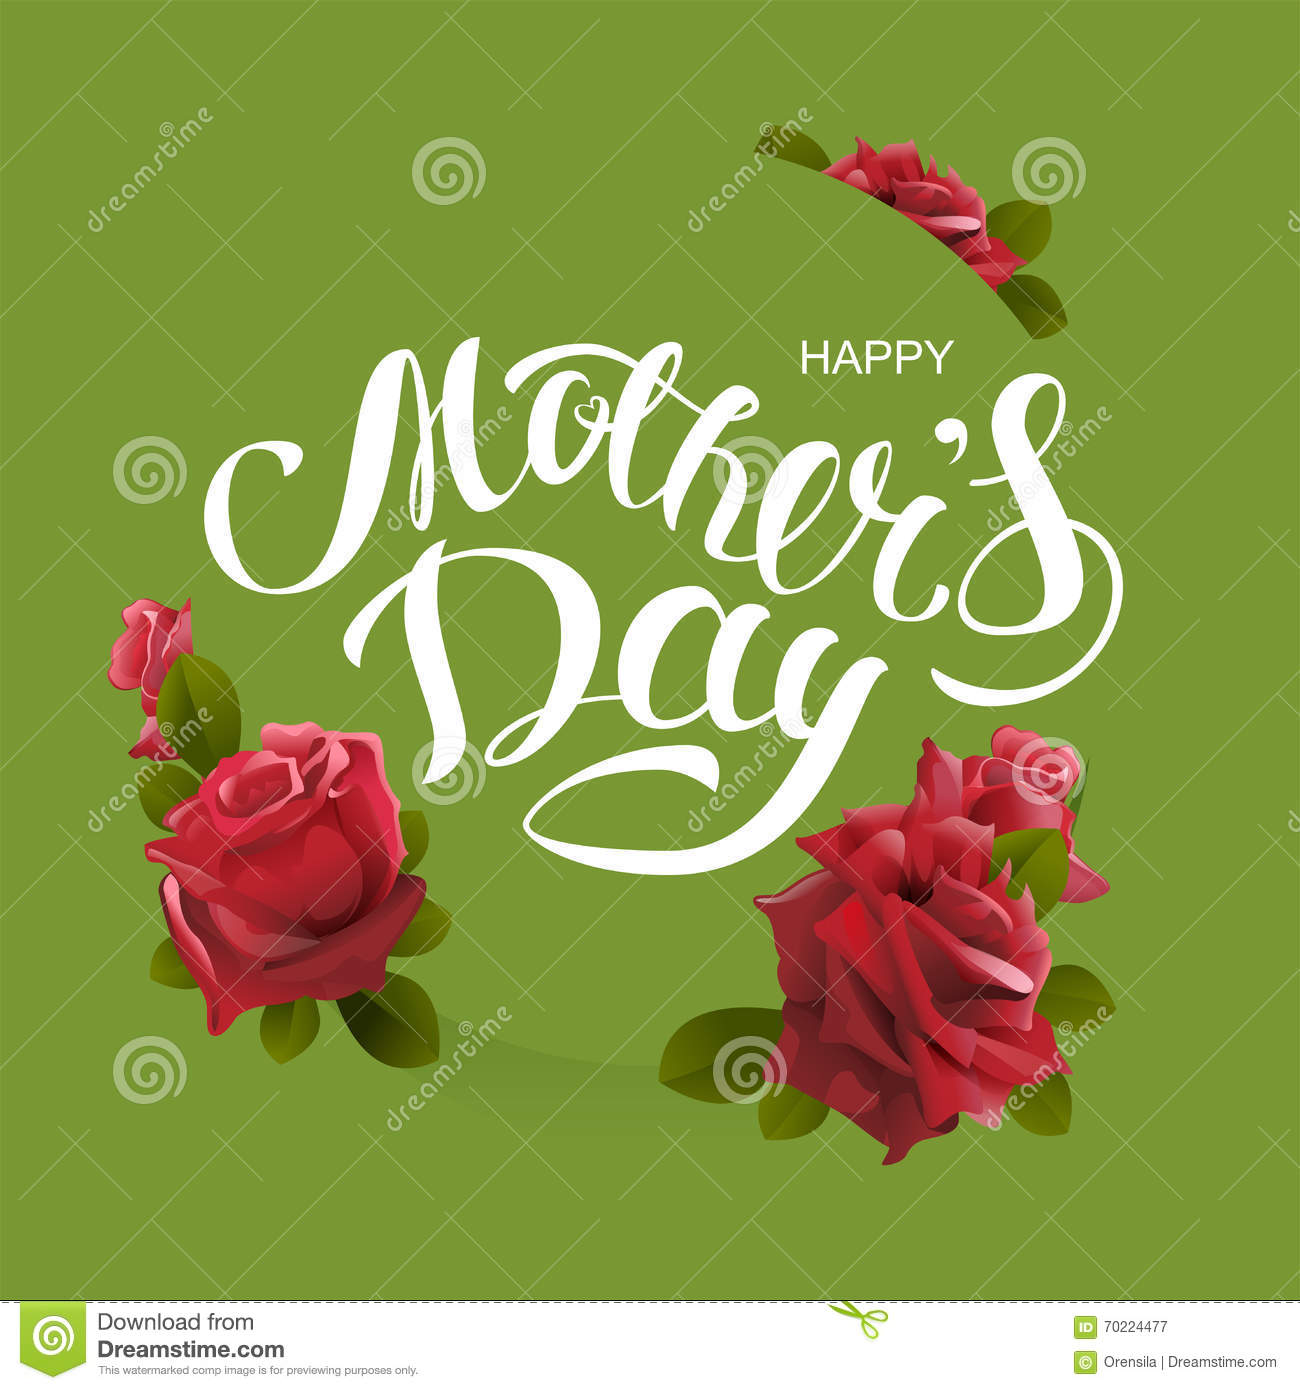 Happy mothers day greeting card lettering text and flower rose happy mothers day greeting card lettering text and flower rose kristyandbryce Choice Image